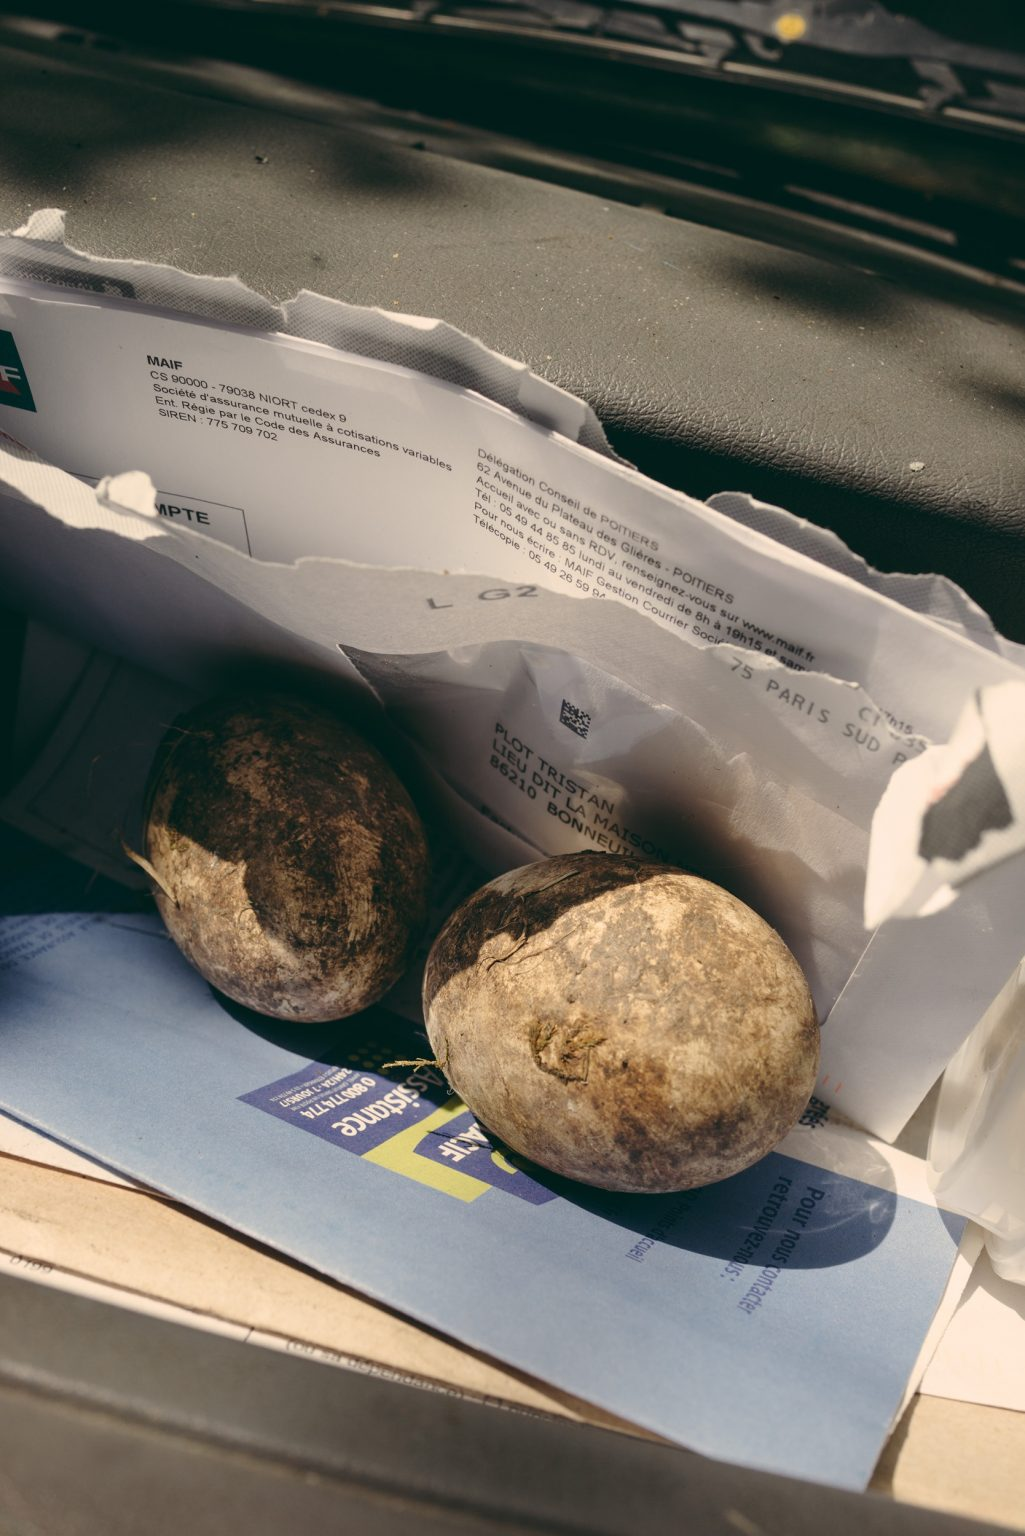 Valdivienne, France, May 2019 - Mildred's eggs during the transfer of the nest in Tristan's new home, on the dashboard of the truck along with the bills. ><  Valdivienne,, Francia, maggio 2019 - Le uova di Mildred durante il trasferimento del nido nella nuova casa di Tristan, sul cruscotto del camion insieme alle bollette.*** SPECIAL   FEE   APPLIES *** *** Local Caption *** 01489363